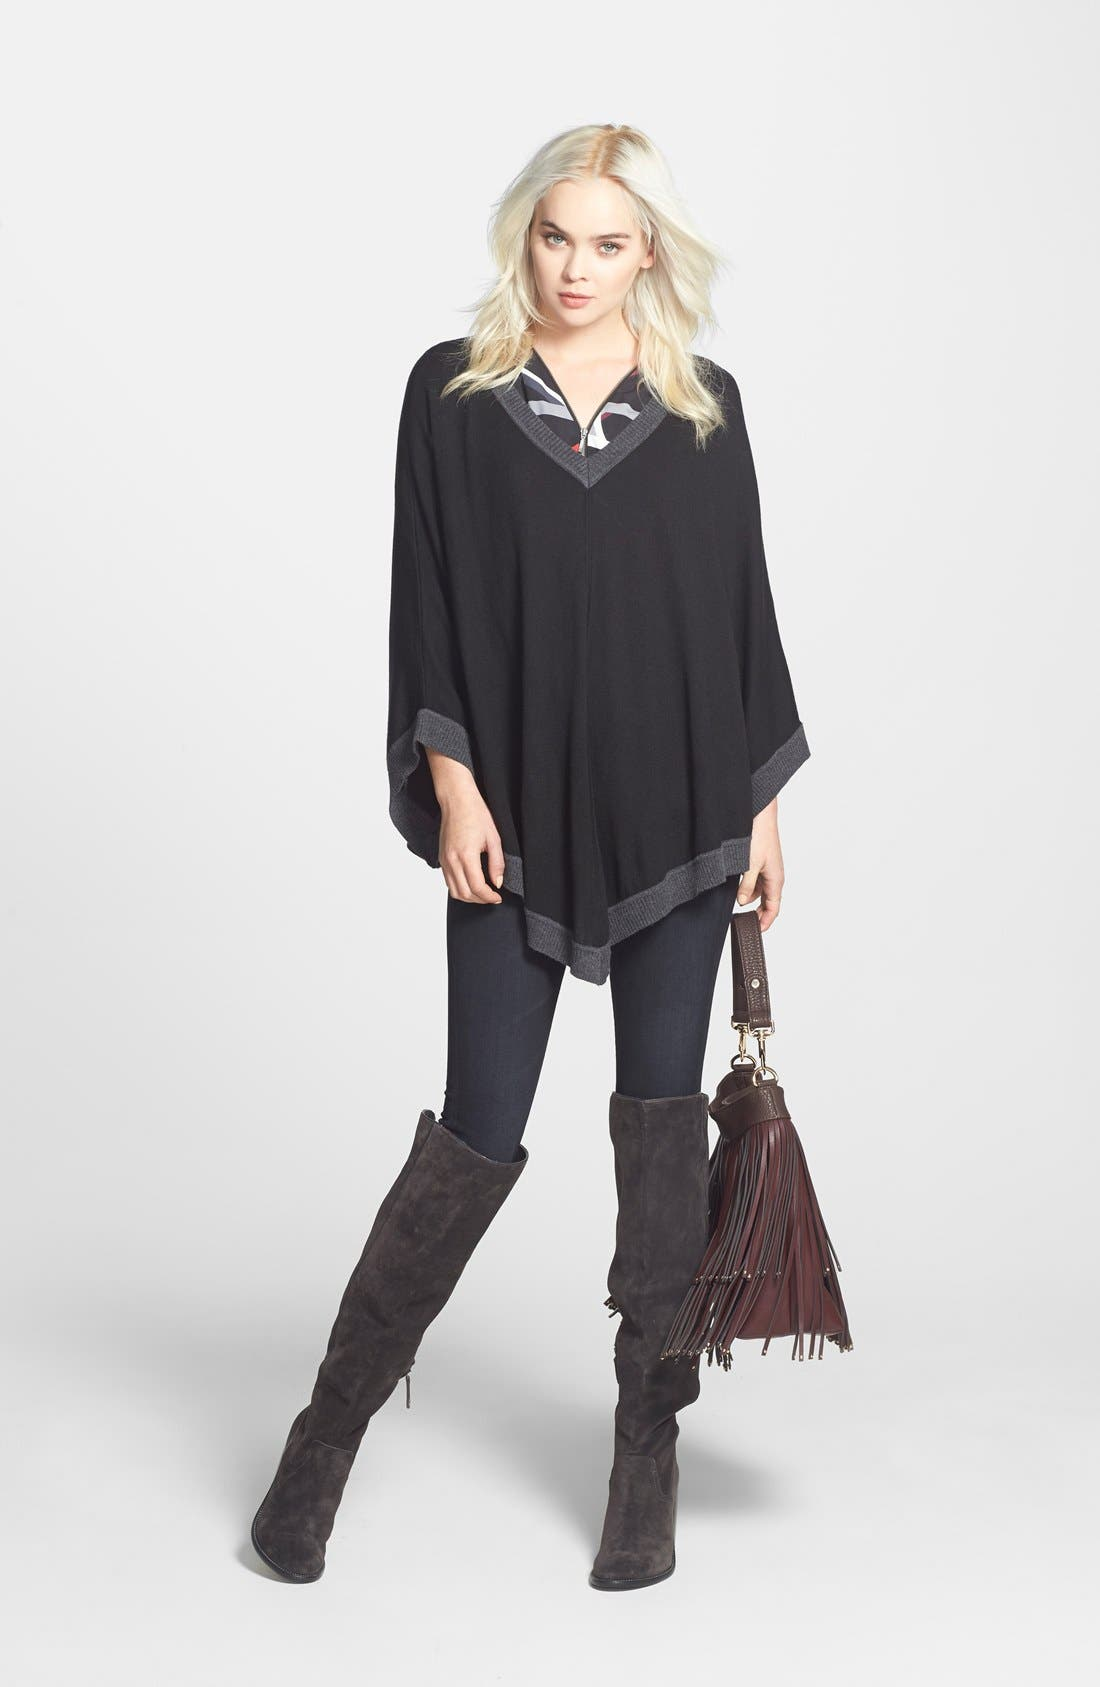 DOLCE VITA, 'Ohanna' Over the Knee Boot, Alternate thumbnail 2, color, 053